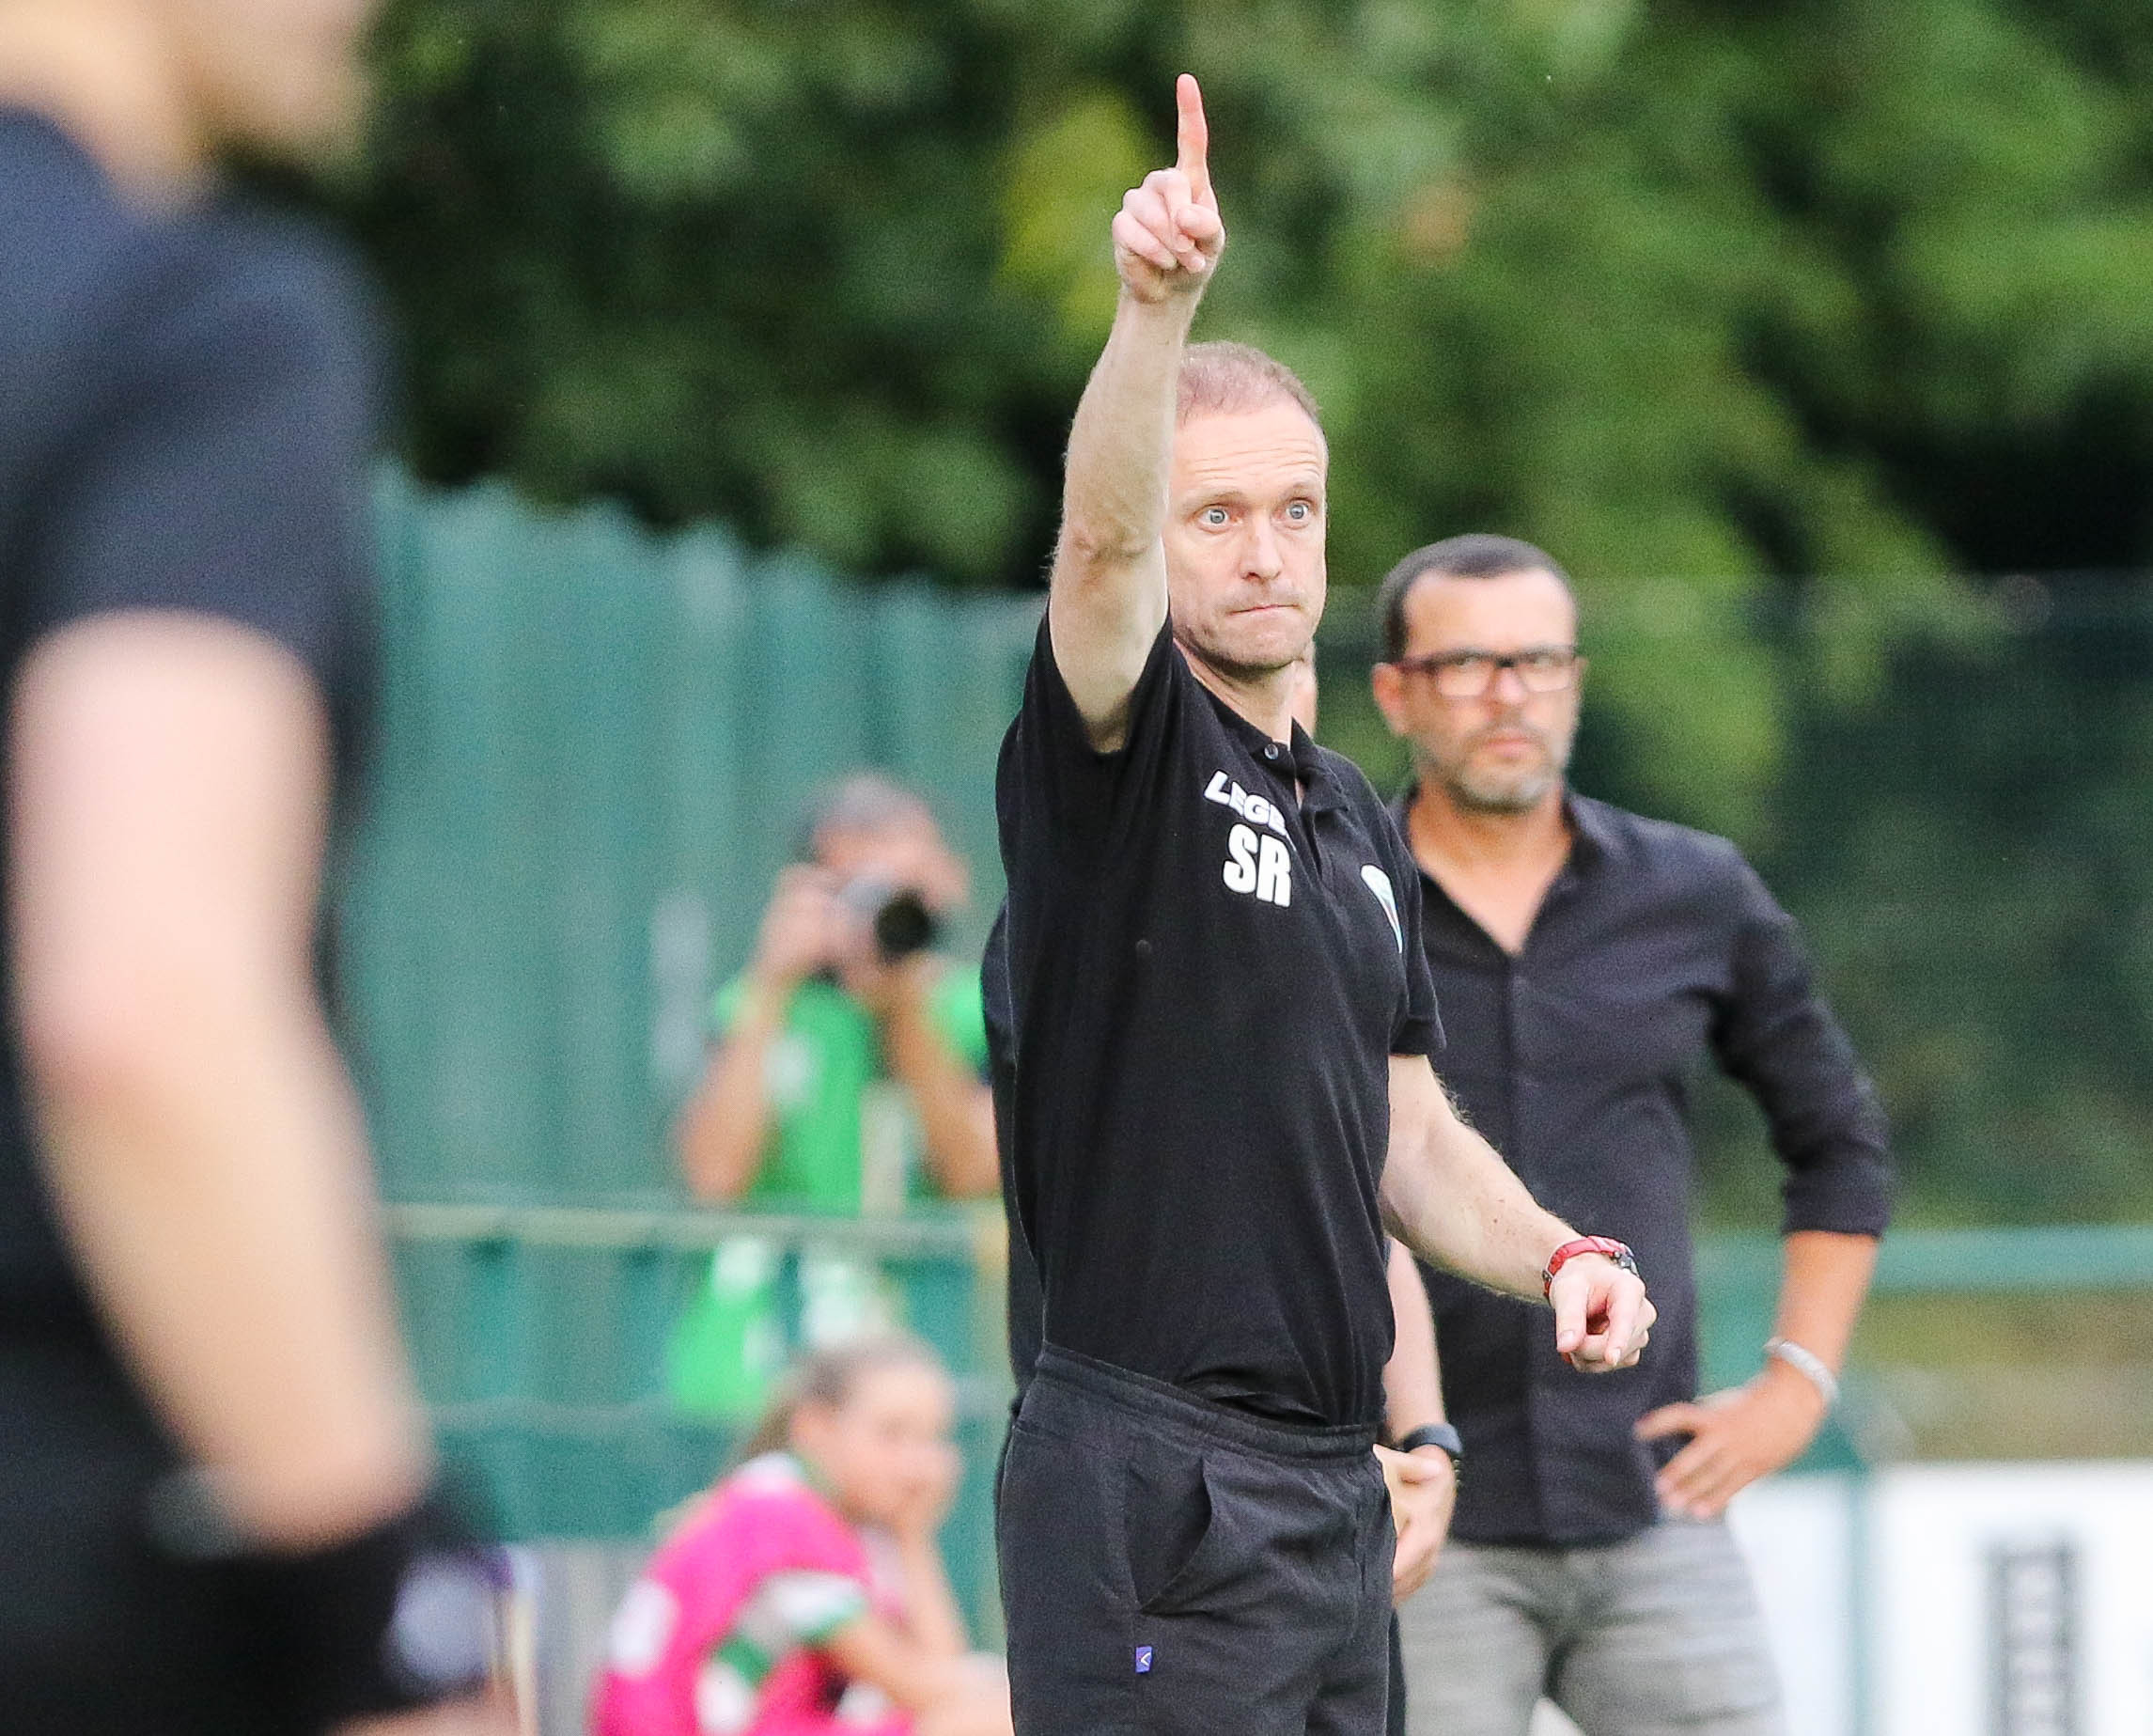 UEFA Europa League 2nd Qualifying Round..The New Saints v Lincoln Red Imps FC..TNS 2-1 Lincoln Red Imps..Pictured is TNS Manager Scott Ruscoe..Picture by Phil Blagg..PB401-2018-48.